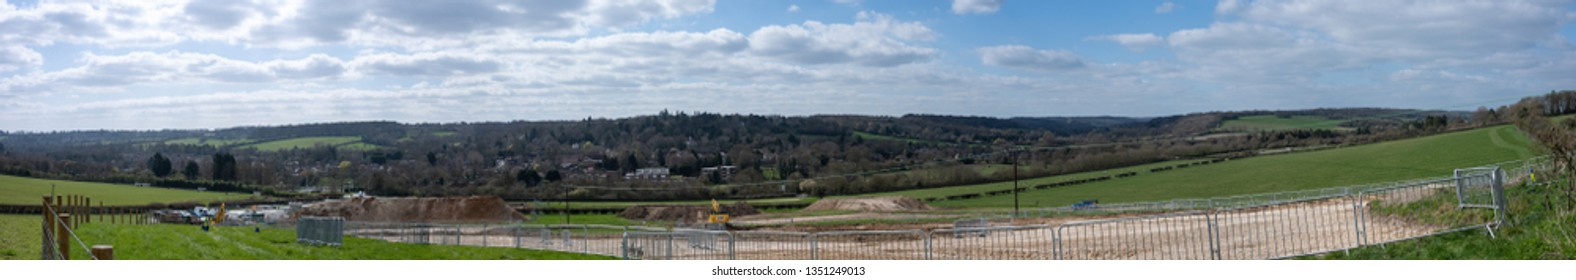 Great Missenden, Buckinghamshire/UK March 26 2019: Large panorama of High Speed 2 Rail project (HS2) south of Great Missenden, Buckinghamshire, construction works.